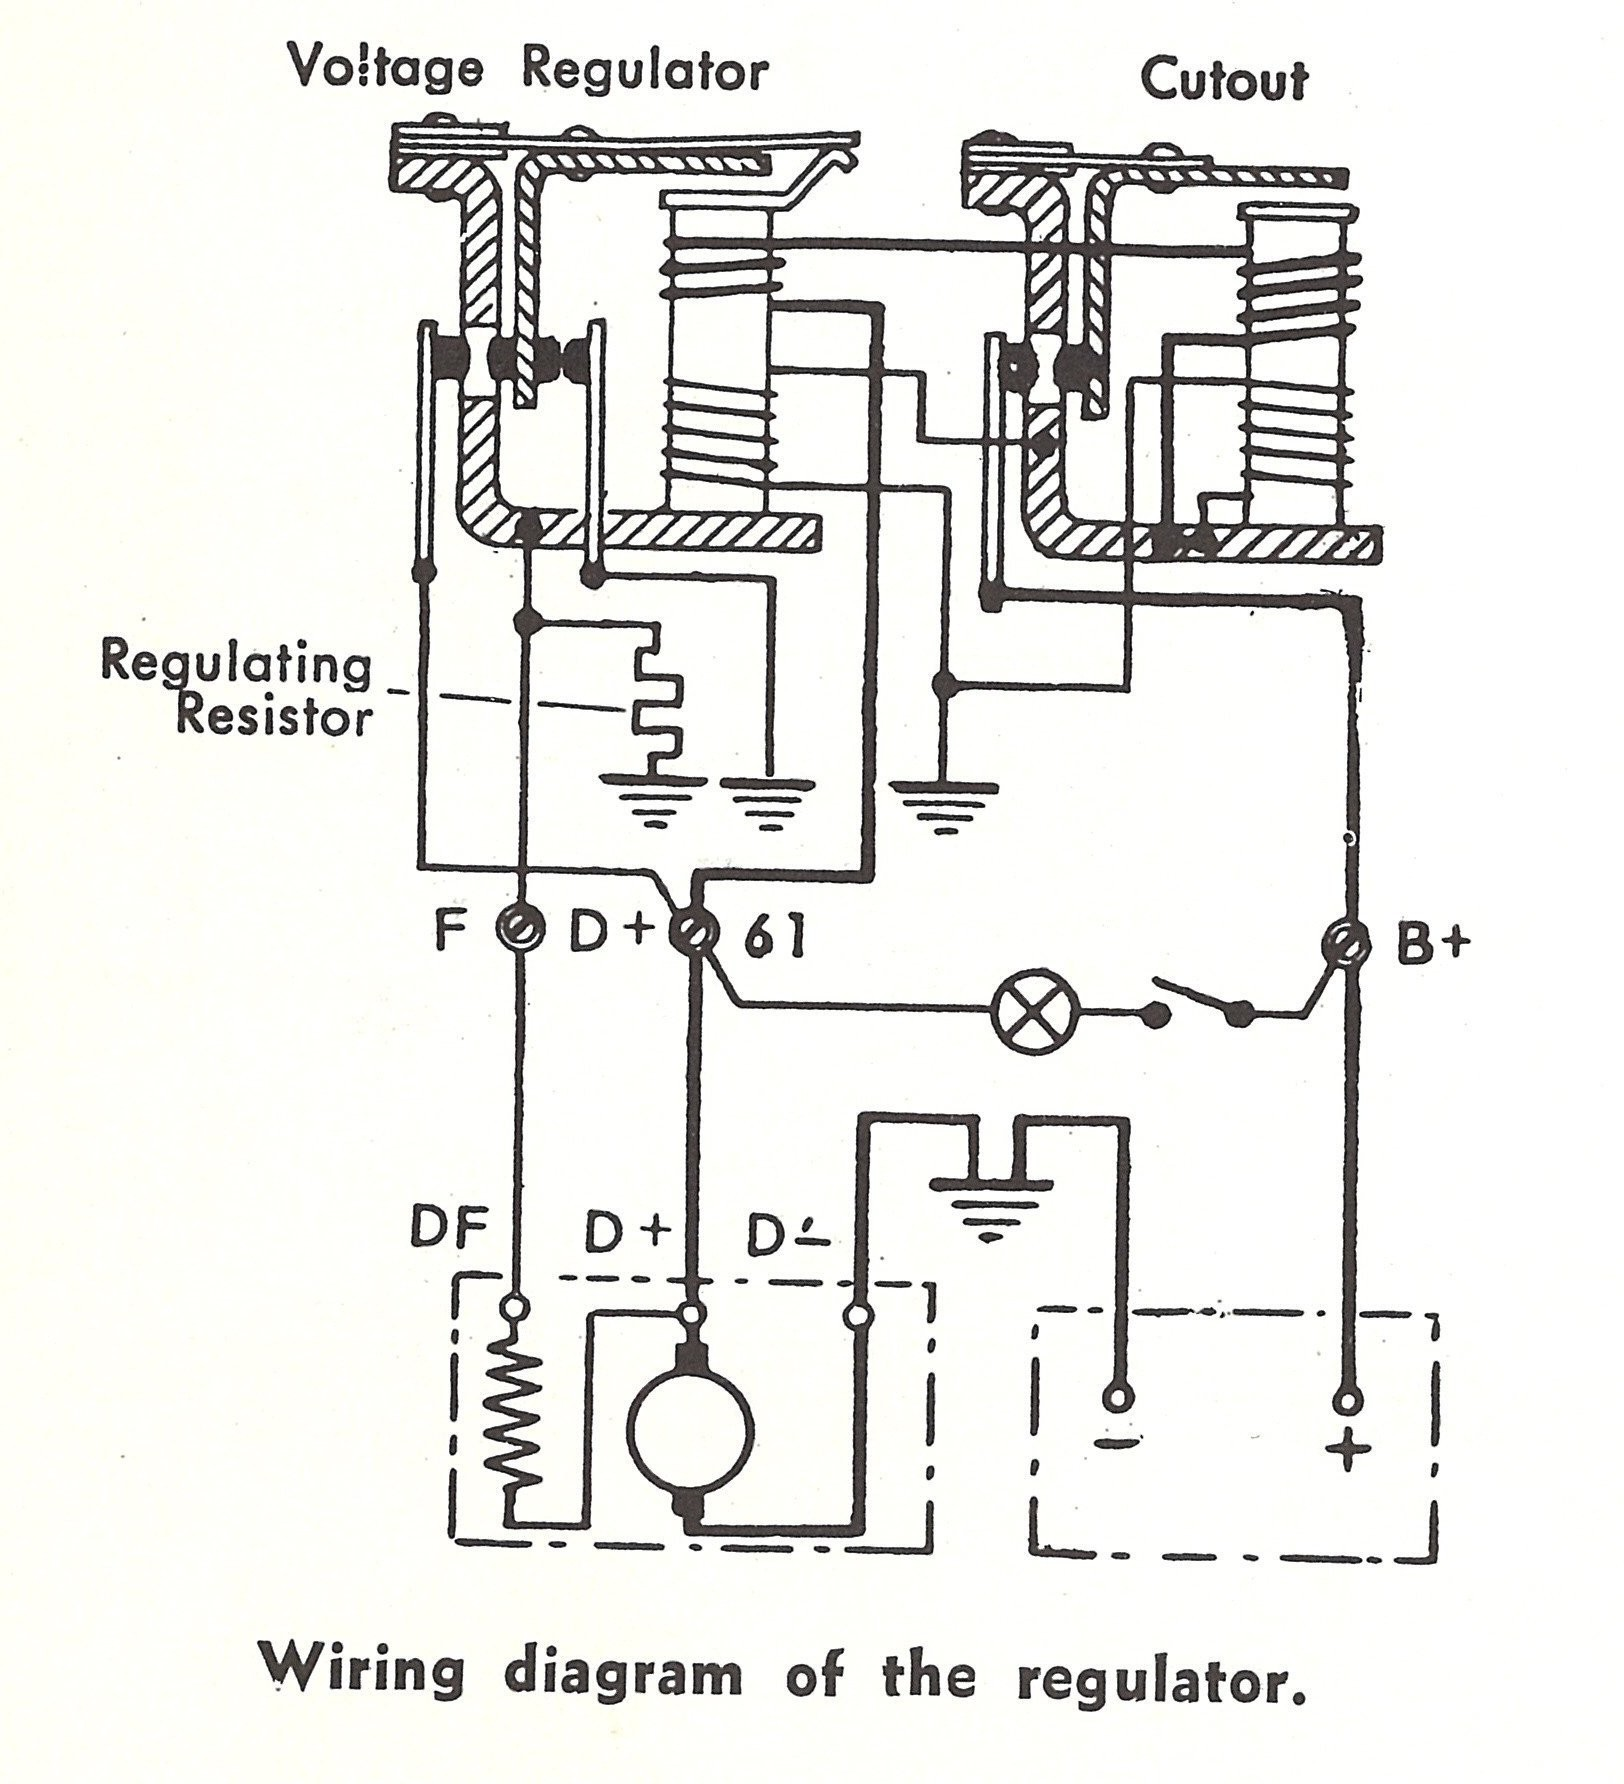 Wiring Diagram for Gas 99 Club Car Voltage Regulator 9ed Harley Davidson Voltage Regulator Wiring Diagram Of Wiring Diagram for Gas 99 Club Car Voltage Regulator